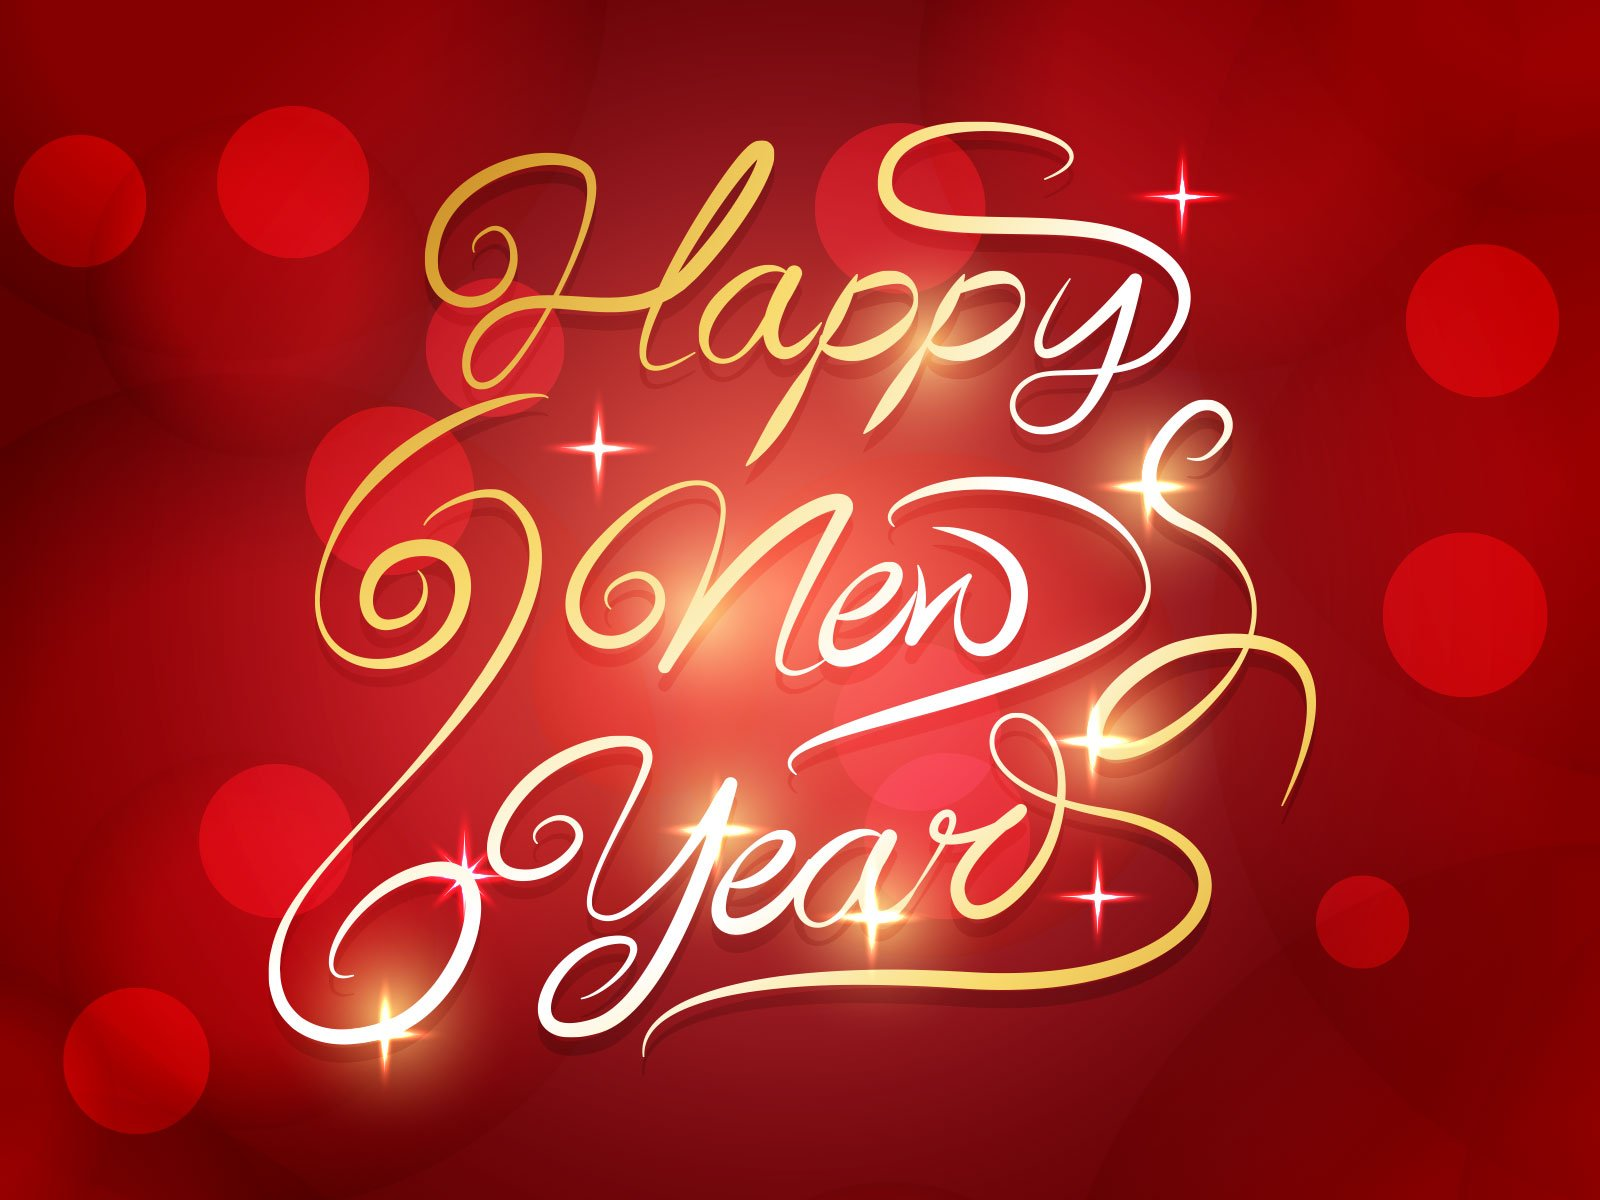 Happy New Year 2015 Wallpapers Images Facebook Cover photos 1600x1200